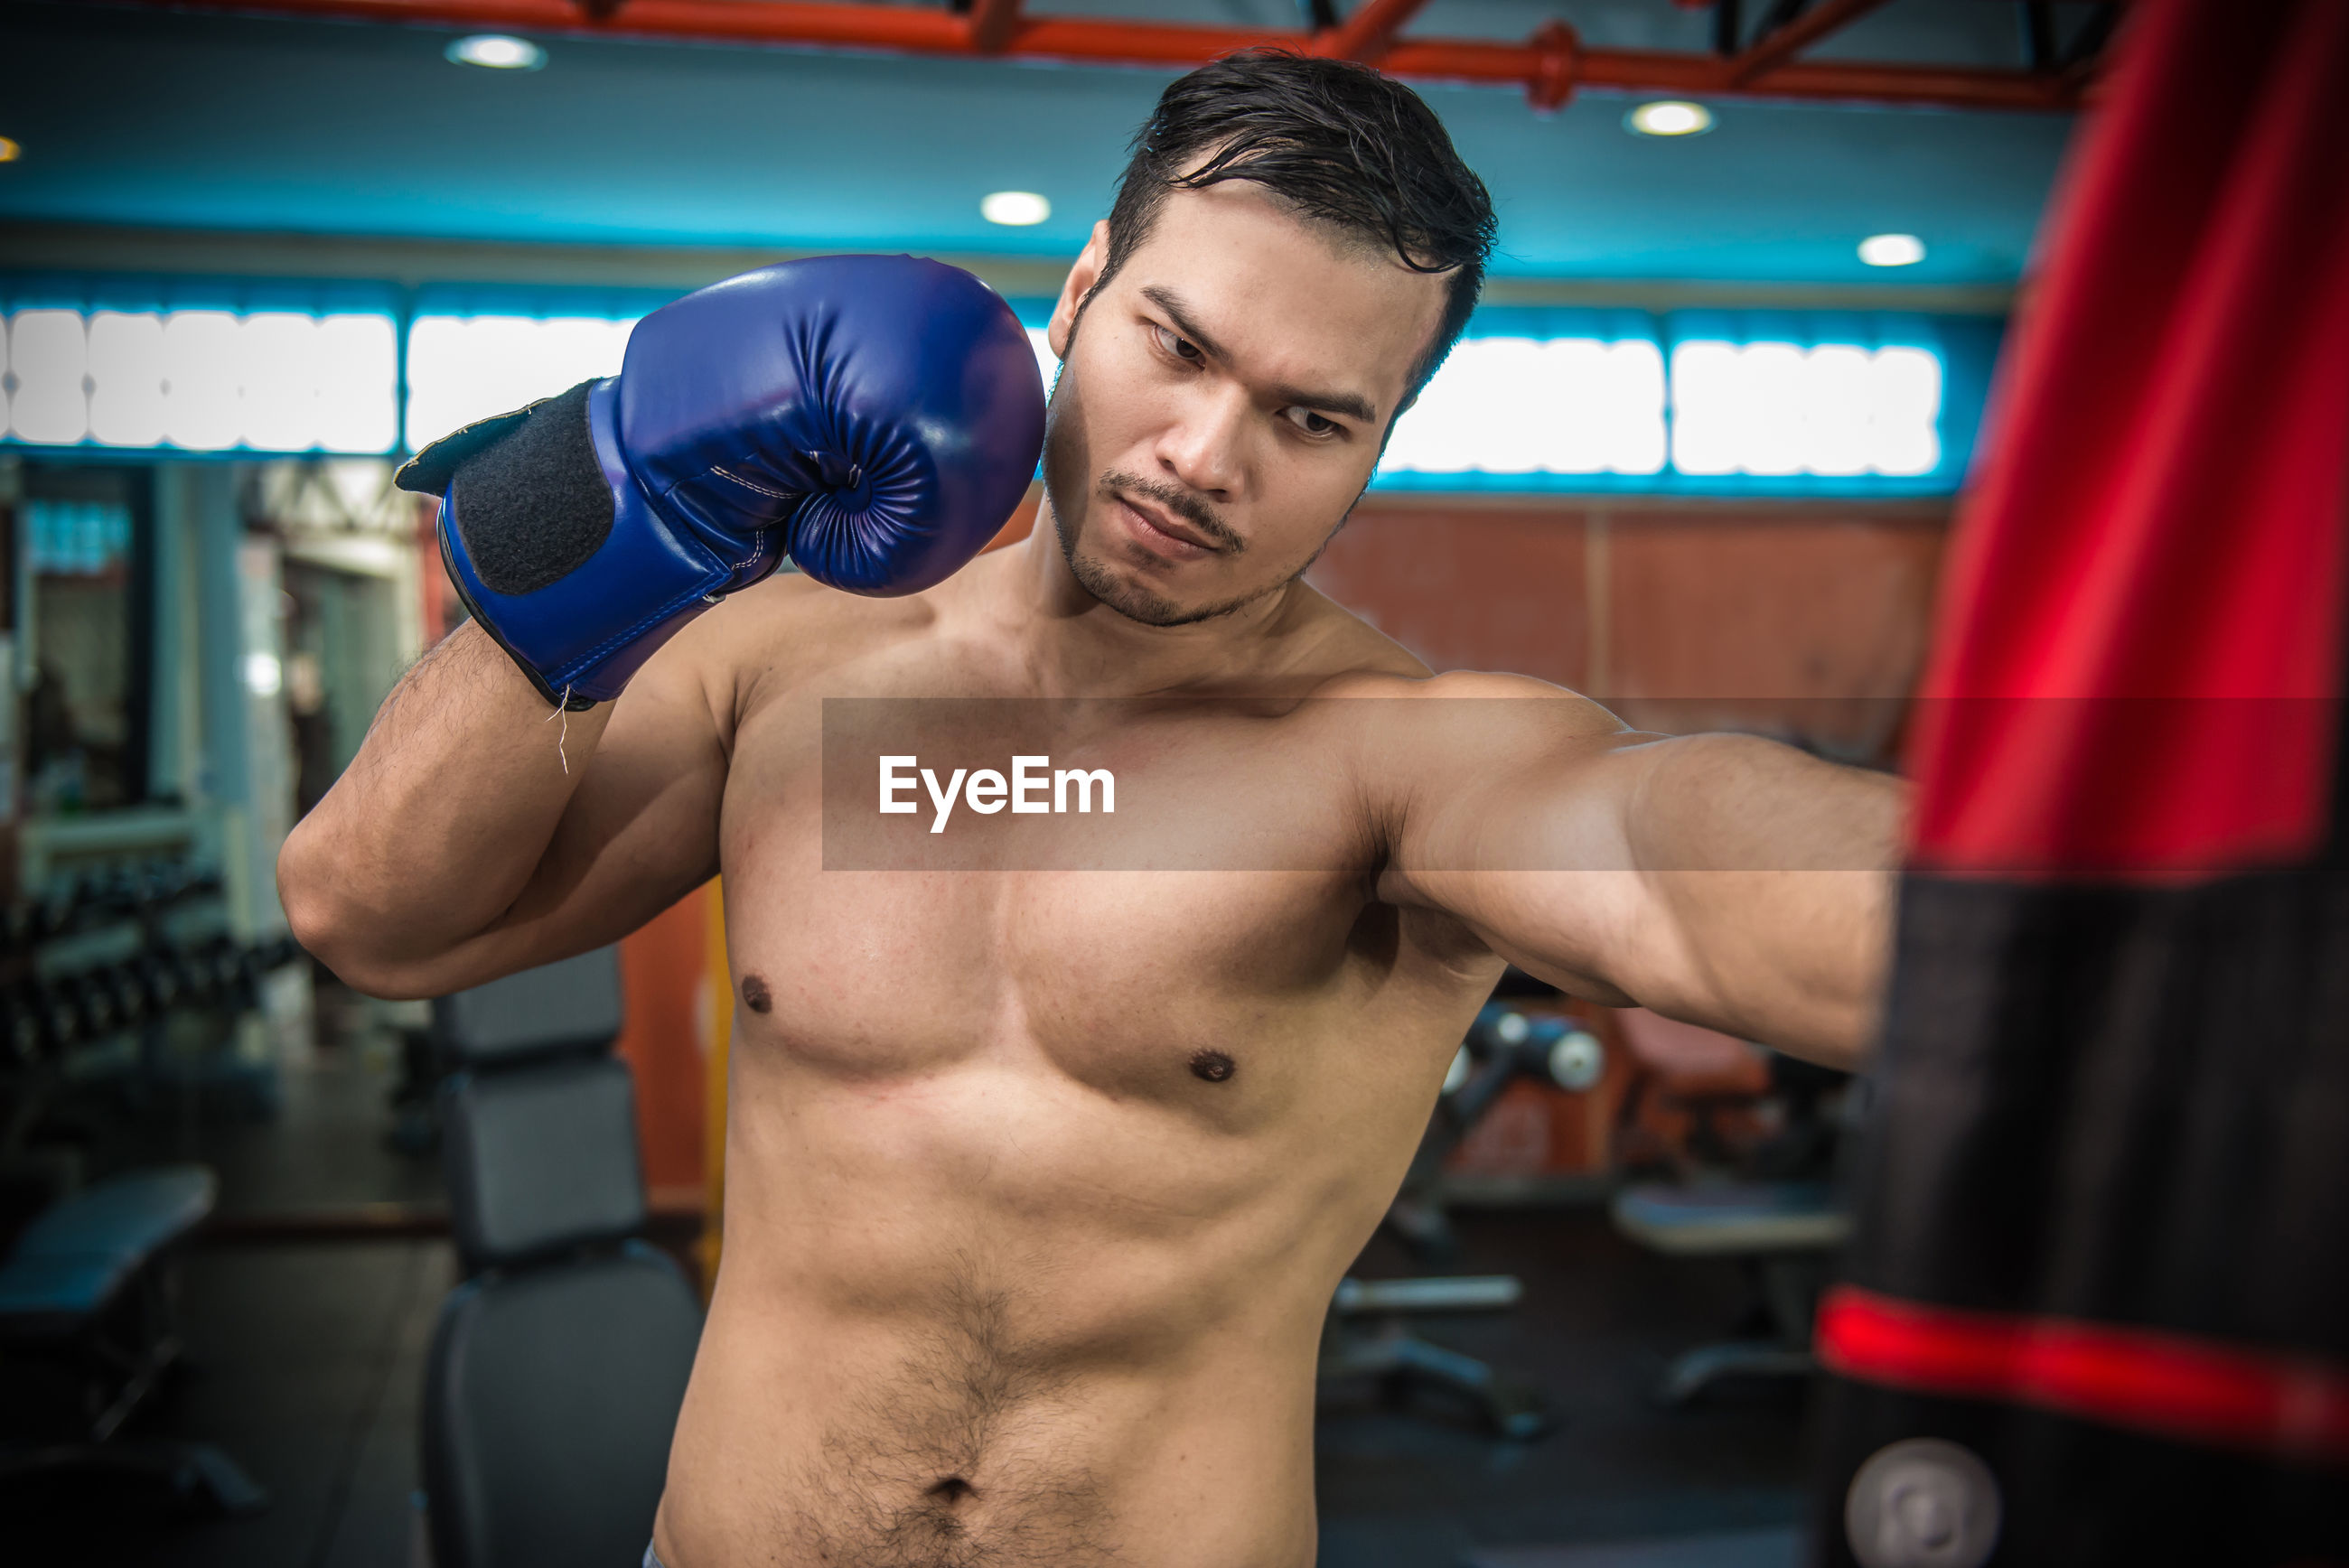 Shirtless muscular man exercising at gym